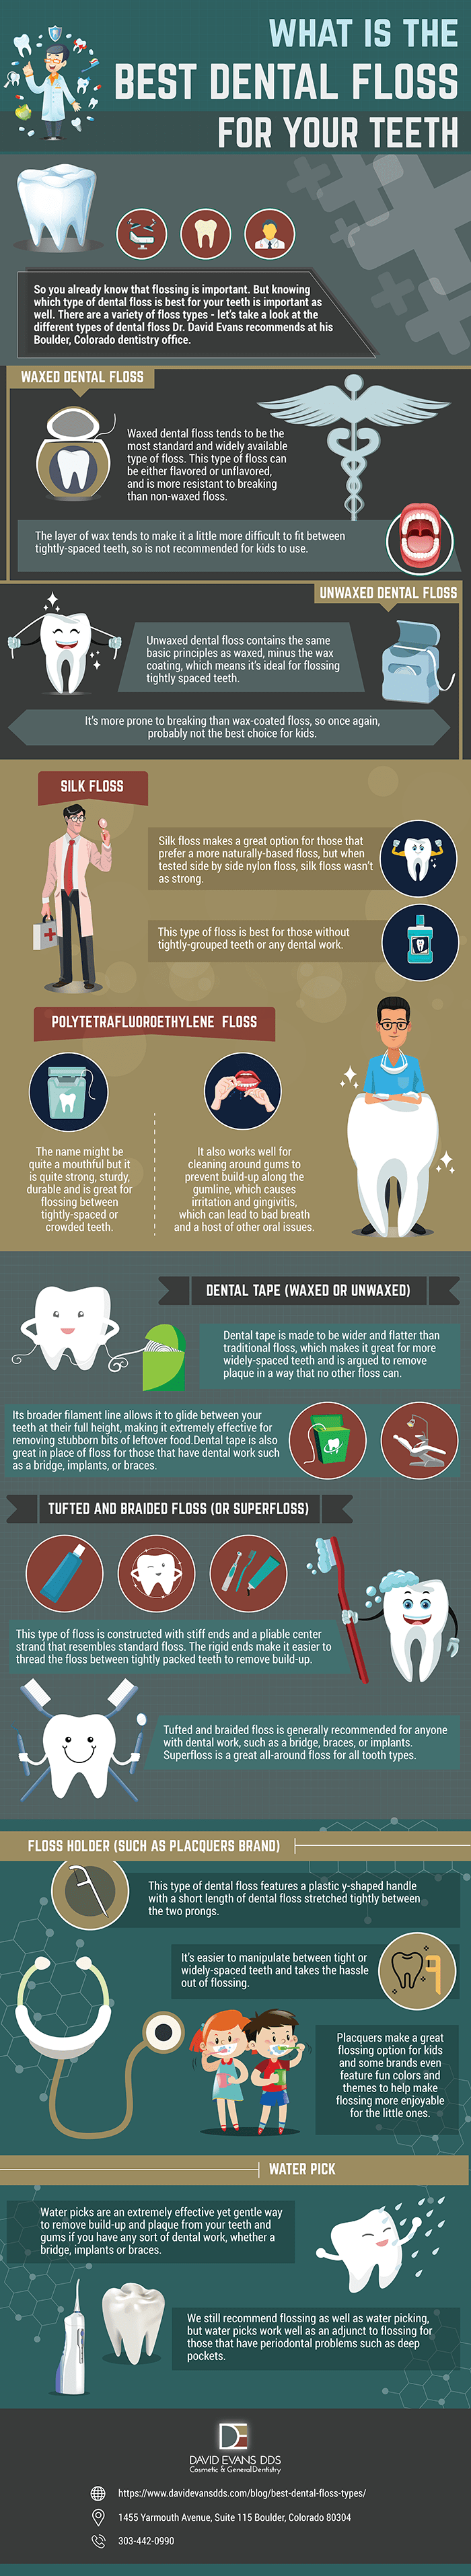 Best Dental Floss infographic